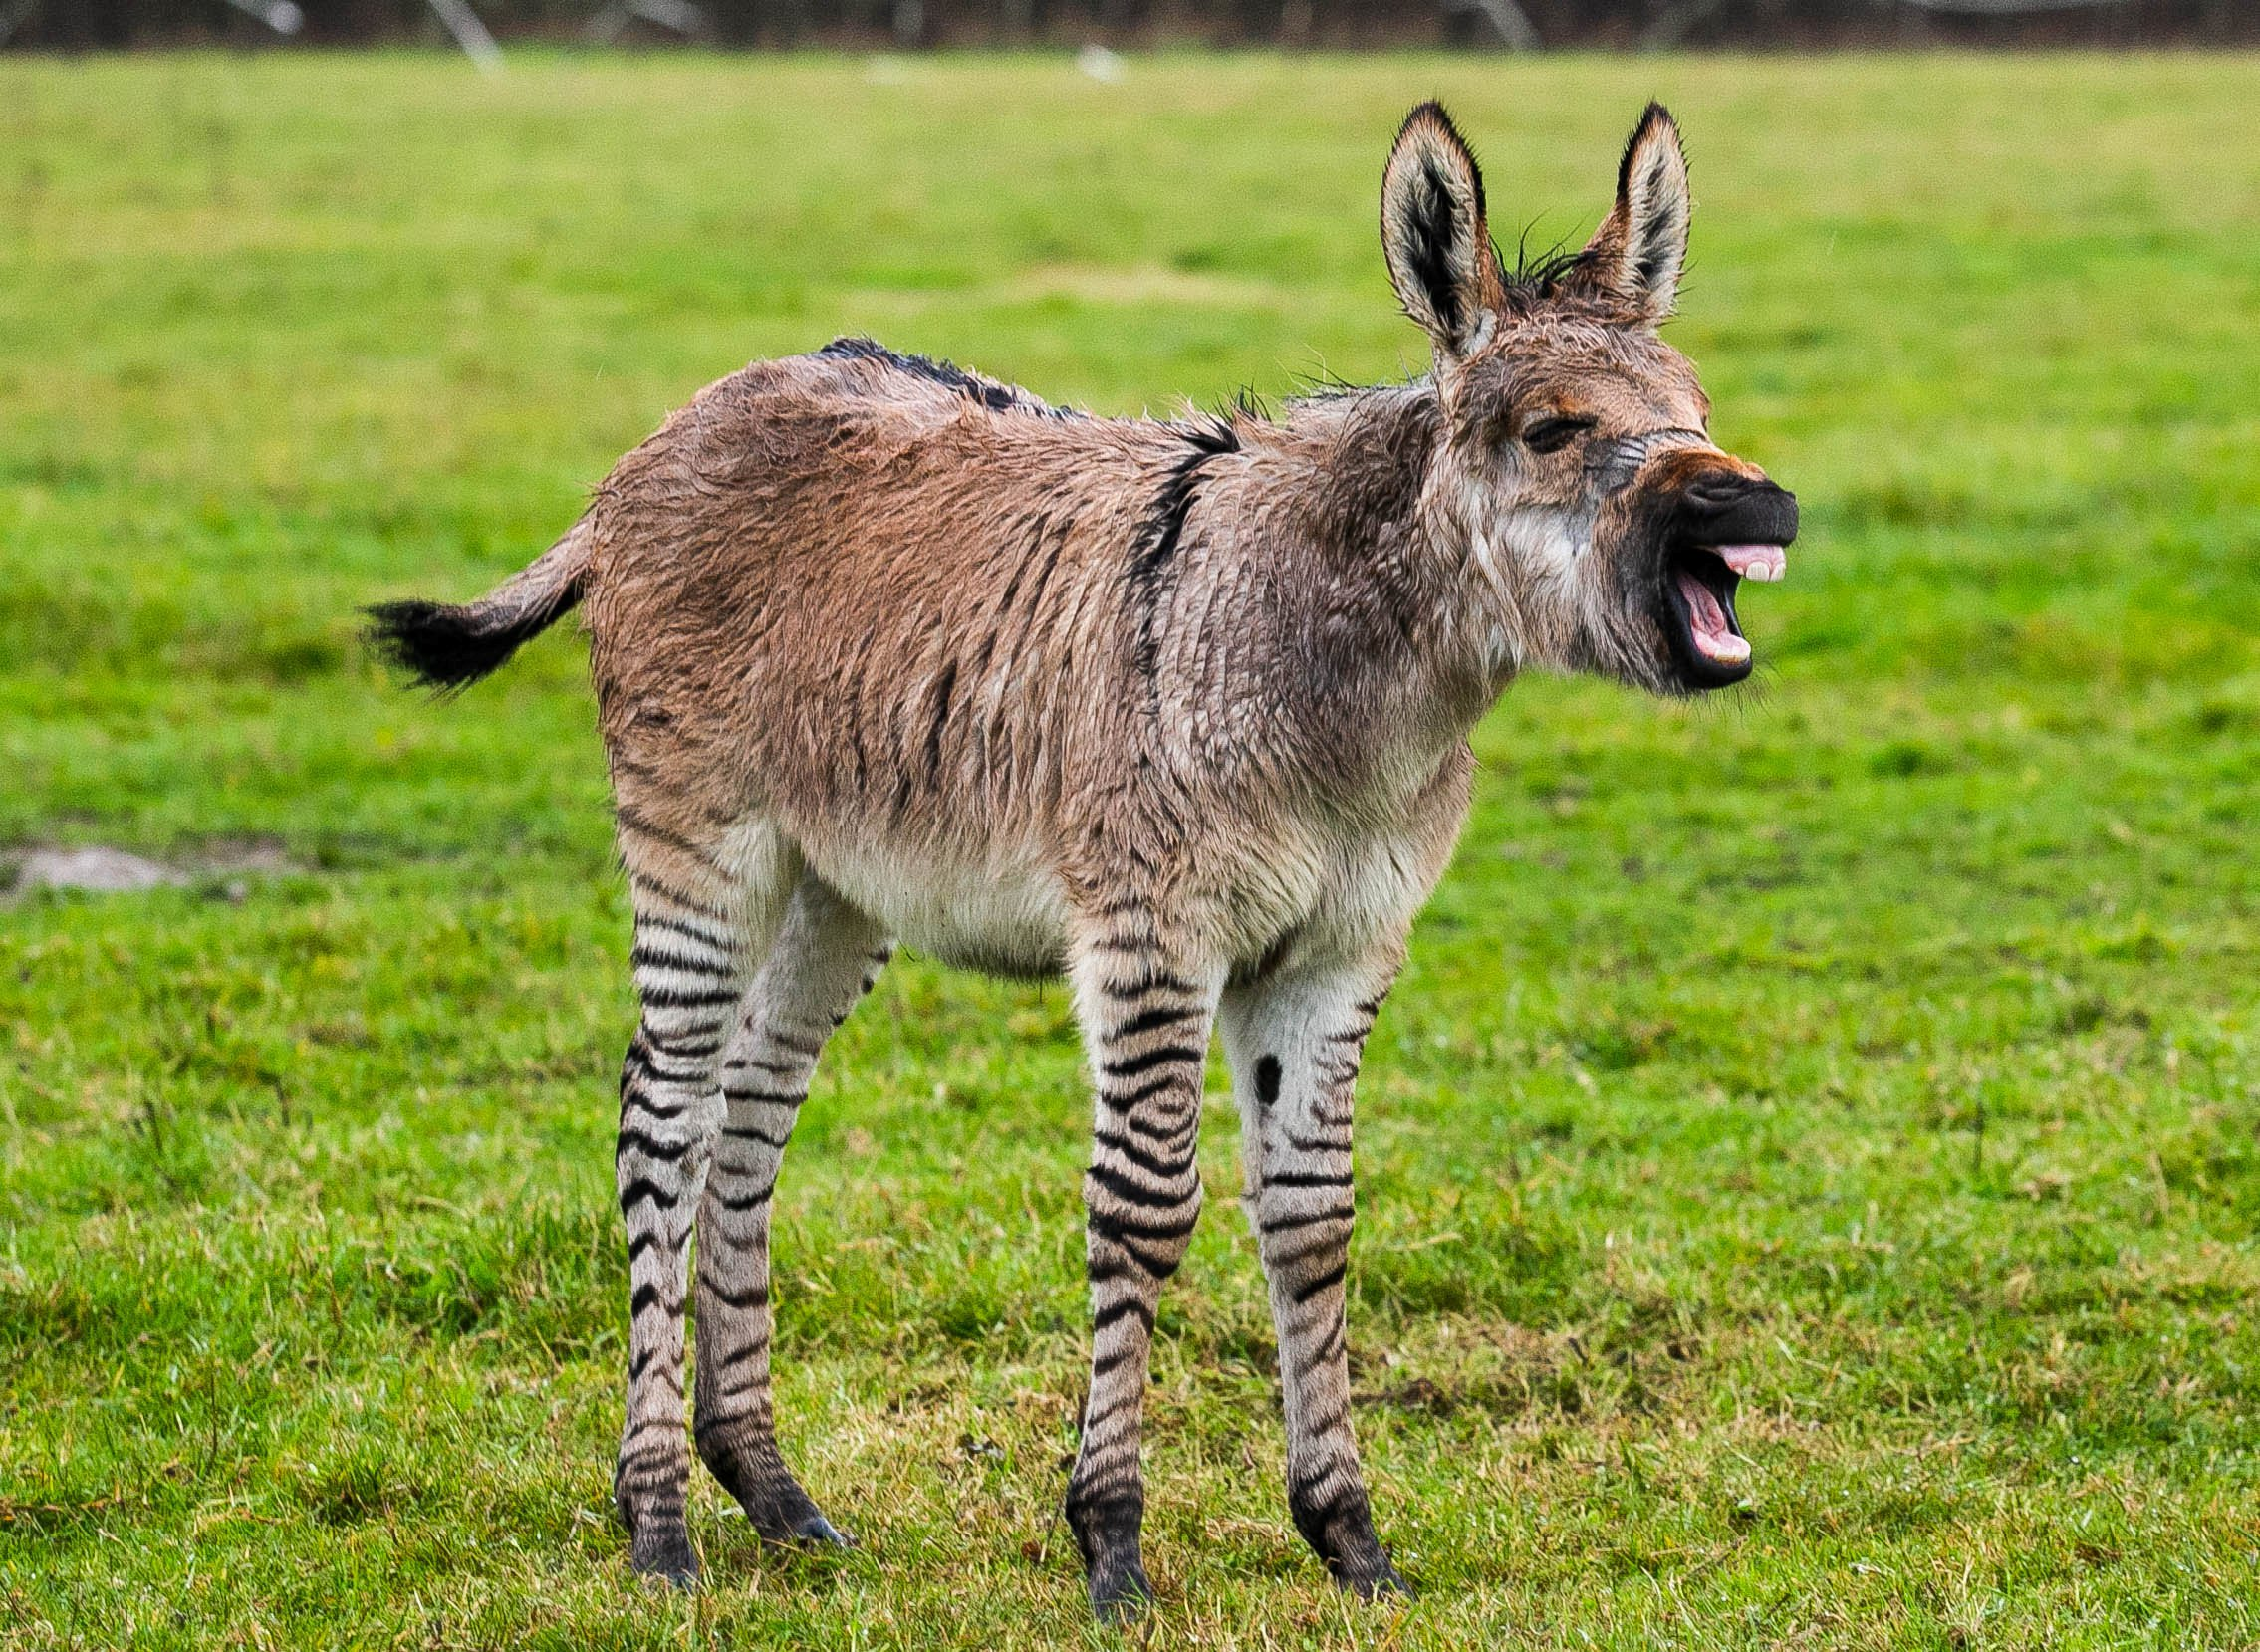 Zippy the zonkey in South Barrow, Somerset. Zippy is a cross between a zebra and a donkey and was born on October the 2nd. 04/11/2018 See SWNS story SWBRzonkey Meet Zippy the 'zonkey' - a rare zebra-donkey crossbreed from Somerset. The little cross breed was born on October 2 at Kristine Turner???s 25 acre farm in South Barrow, Somerset. Ziggy shares the fields with his mum and nine other donkeys.